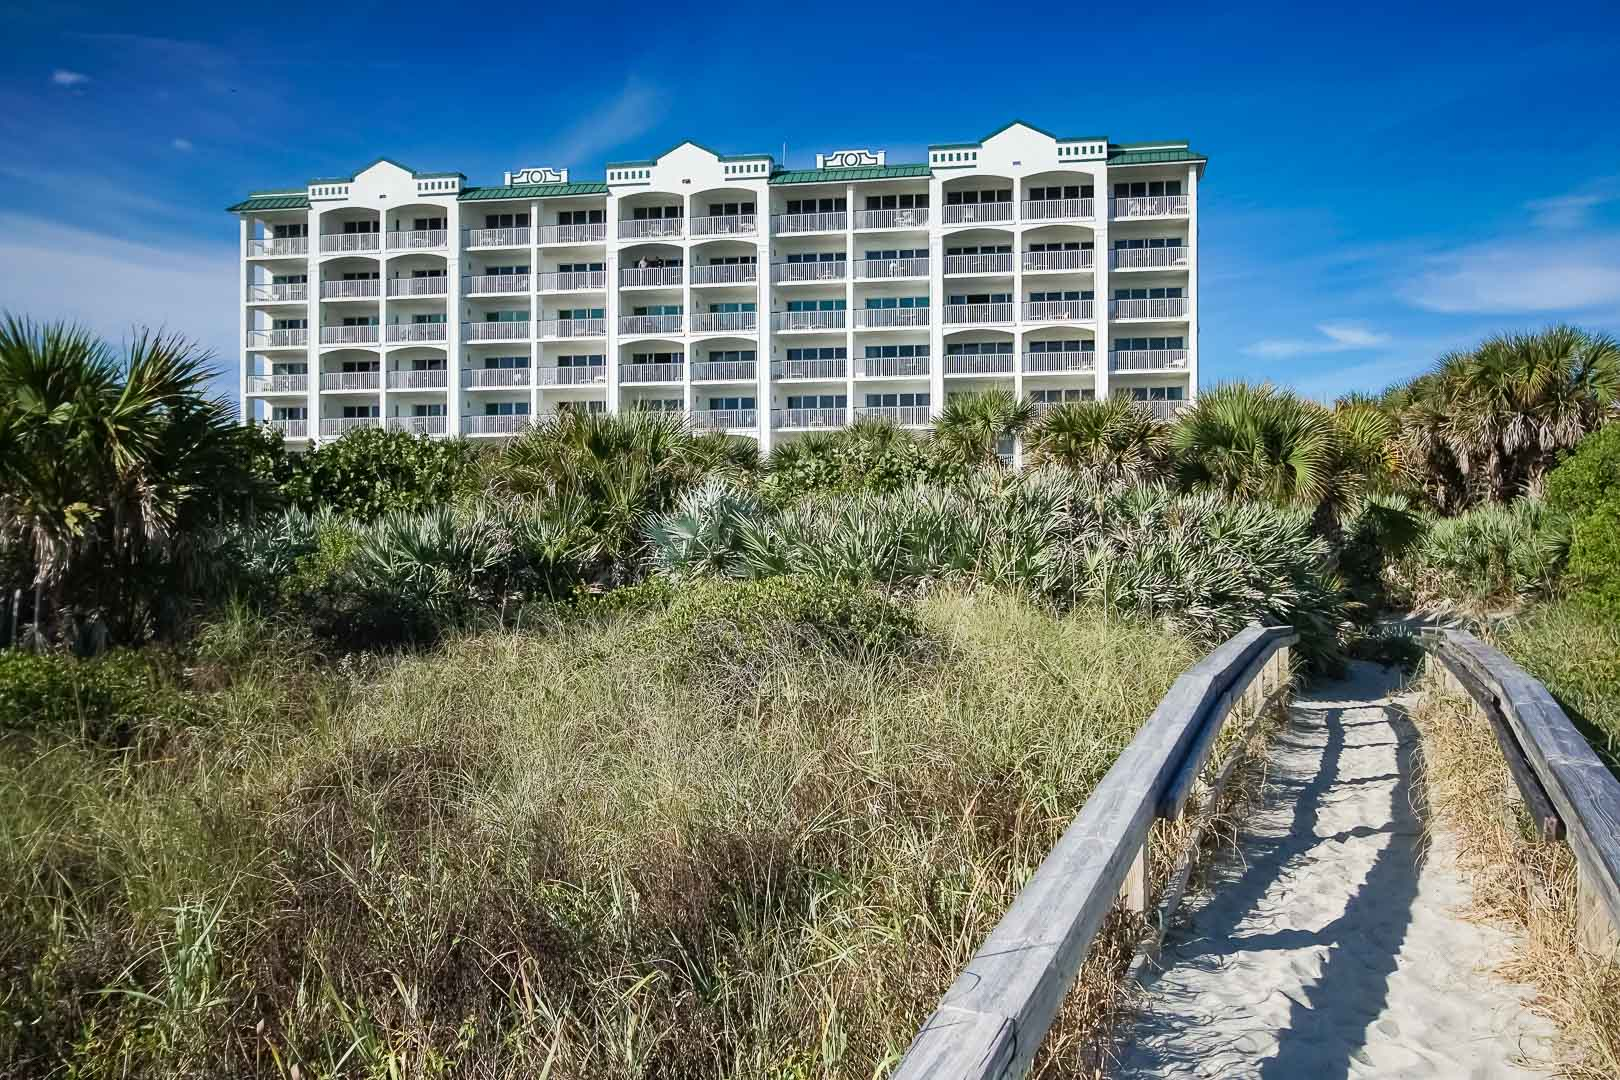 An expansive resort view of VRI's The Resort on Cocoa Beach in Florida.